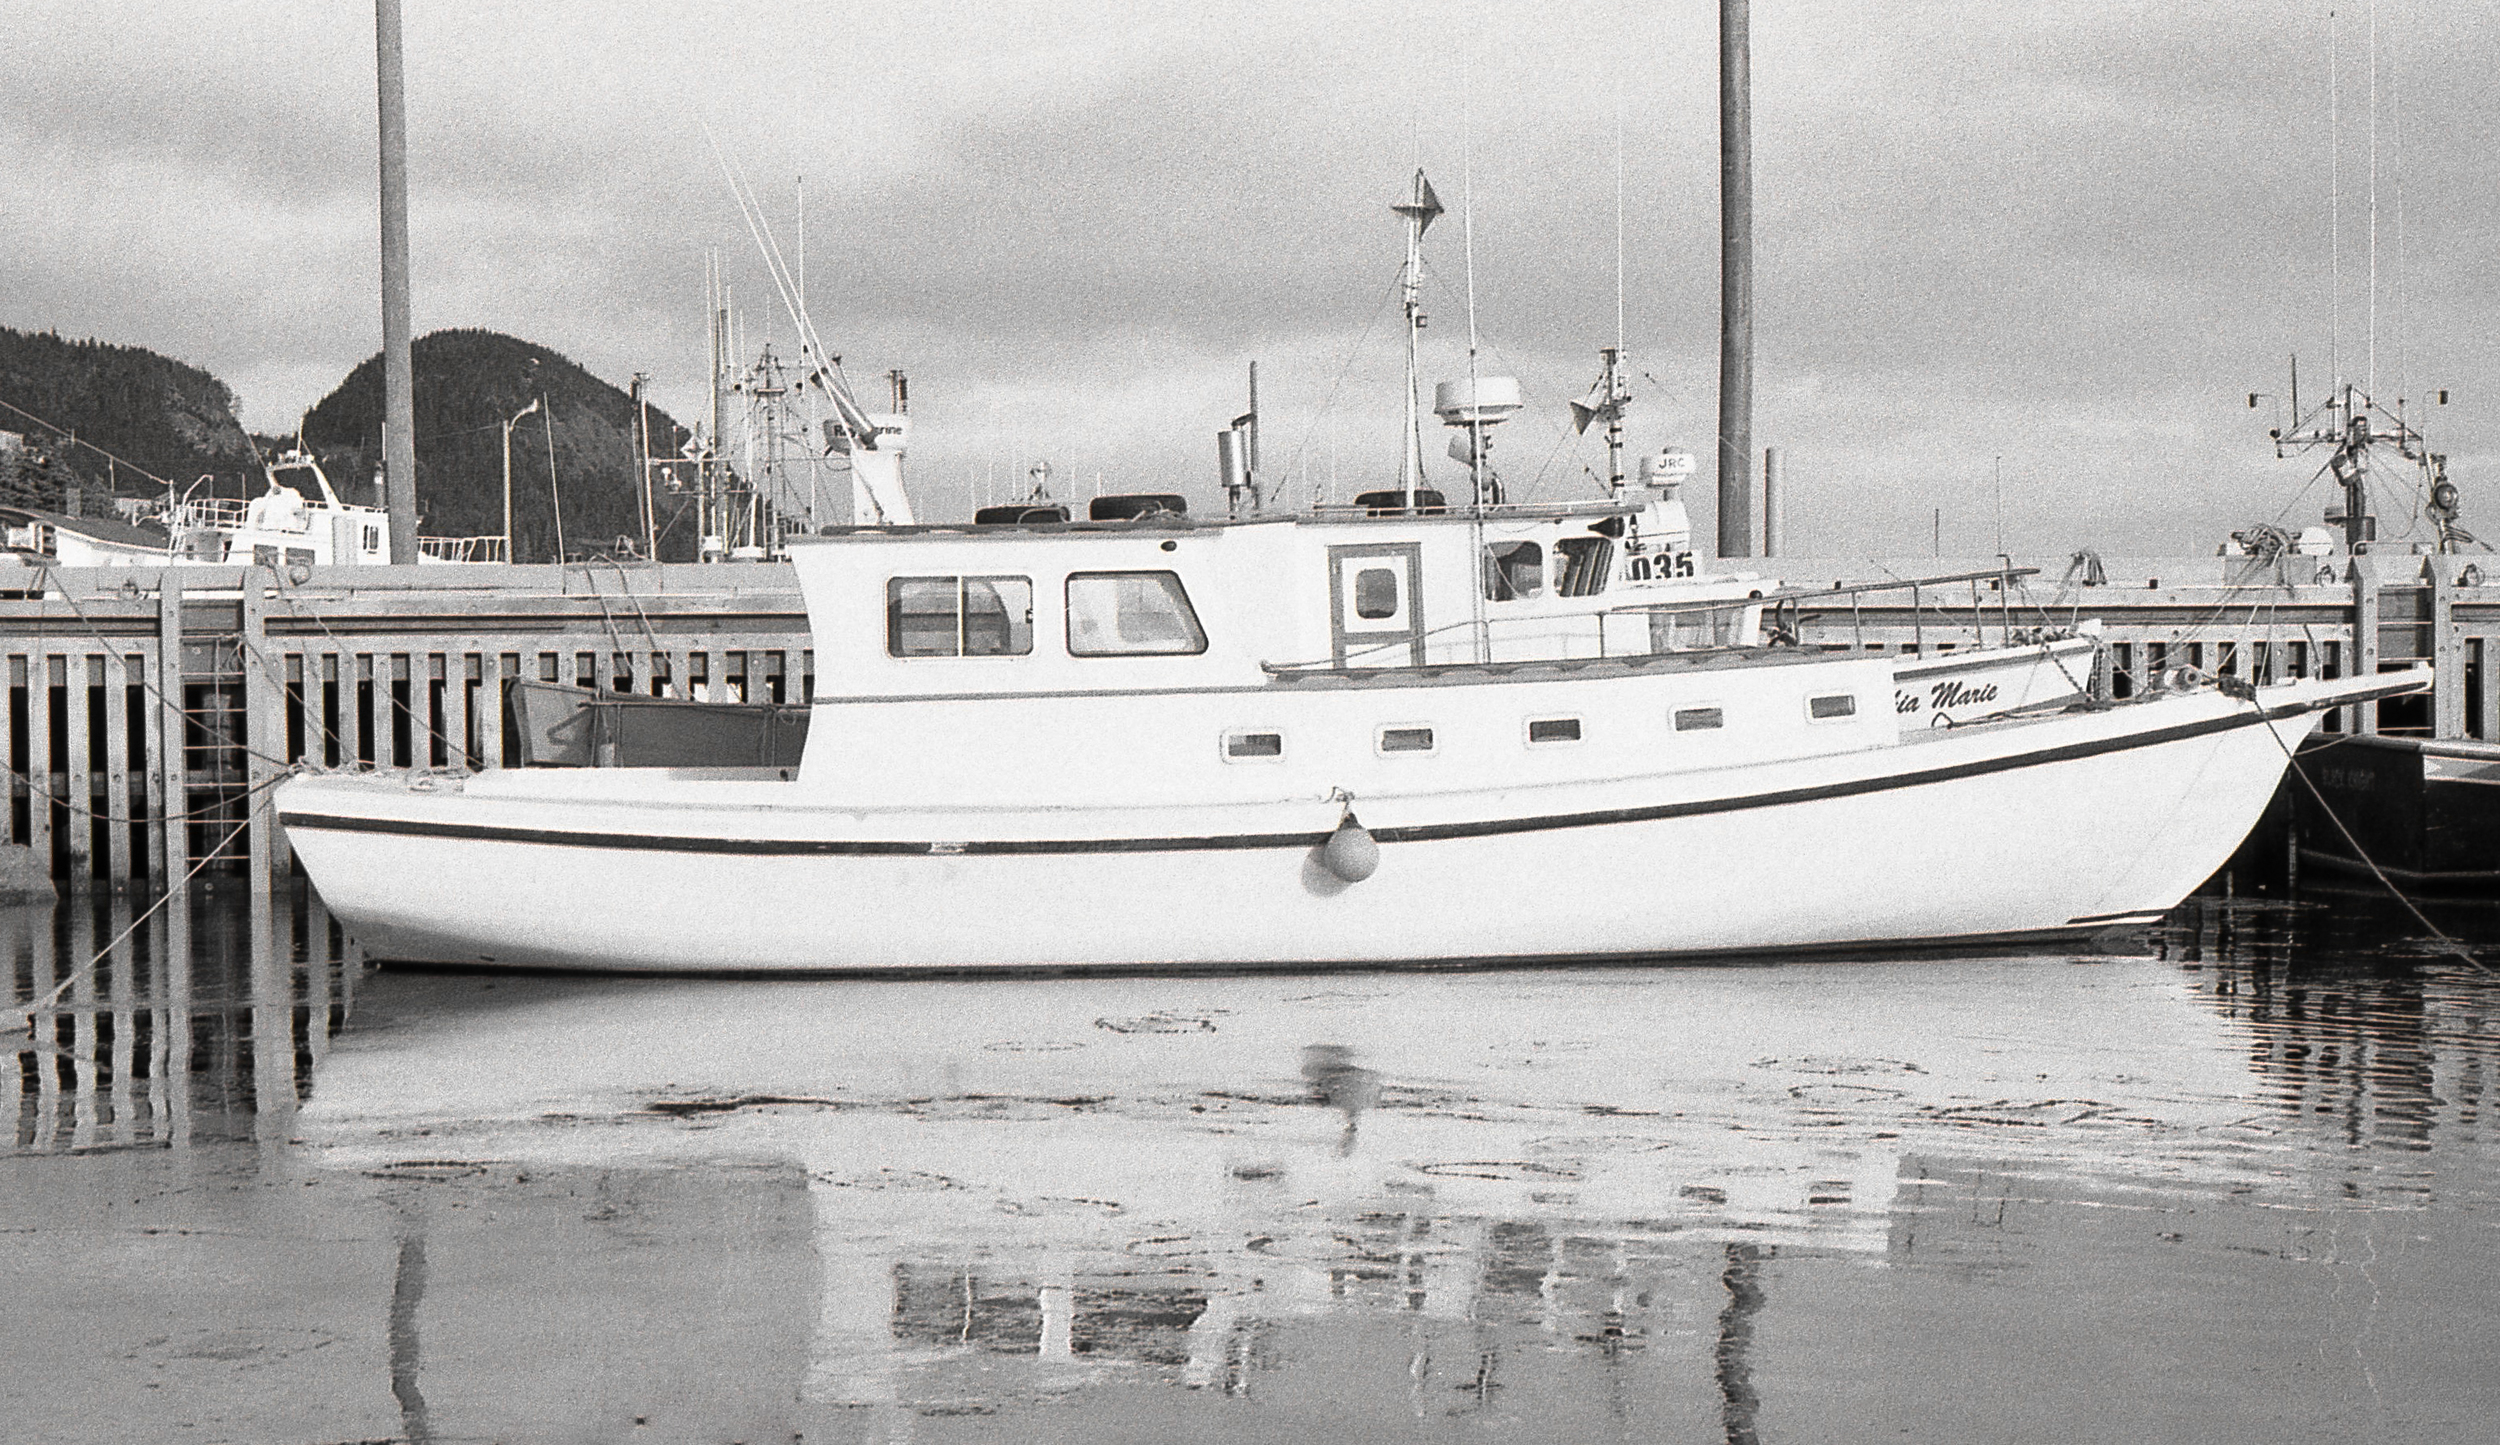 Placentia harbour in early winter. Thin sheets of ice are forming next to the boat.